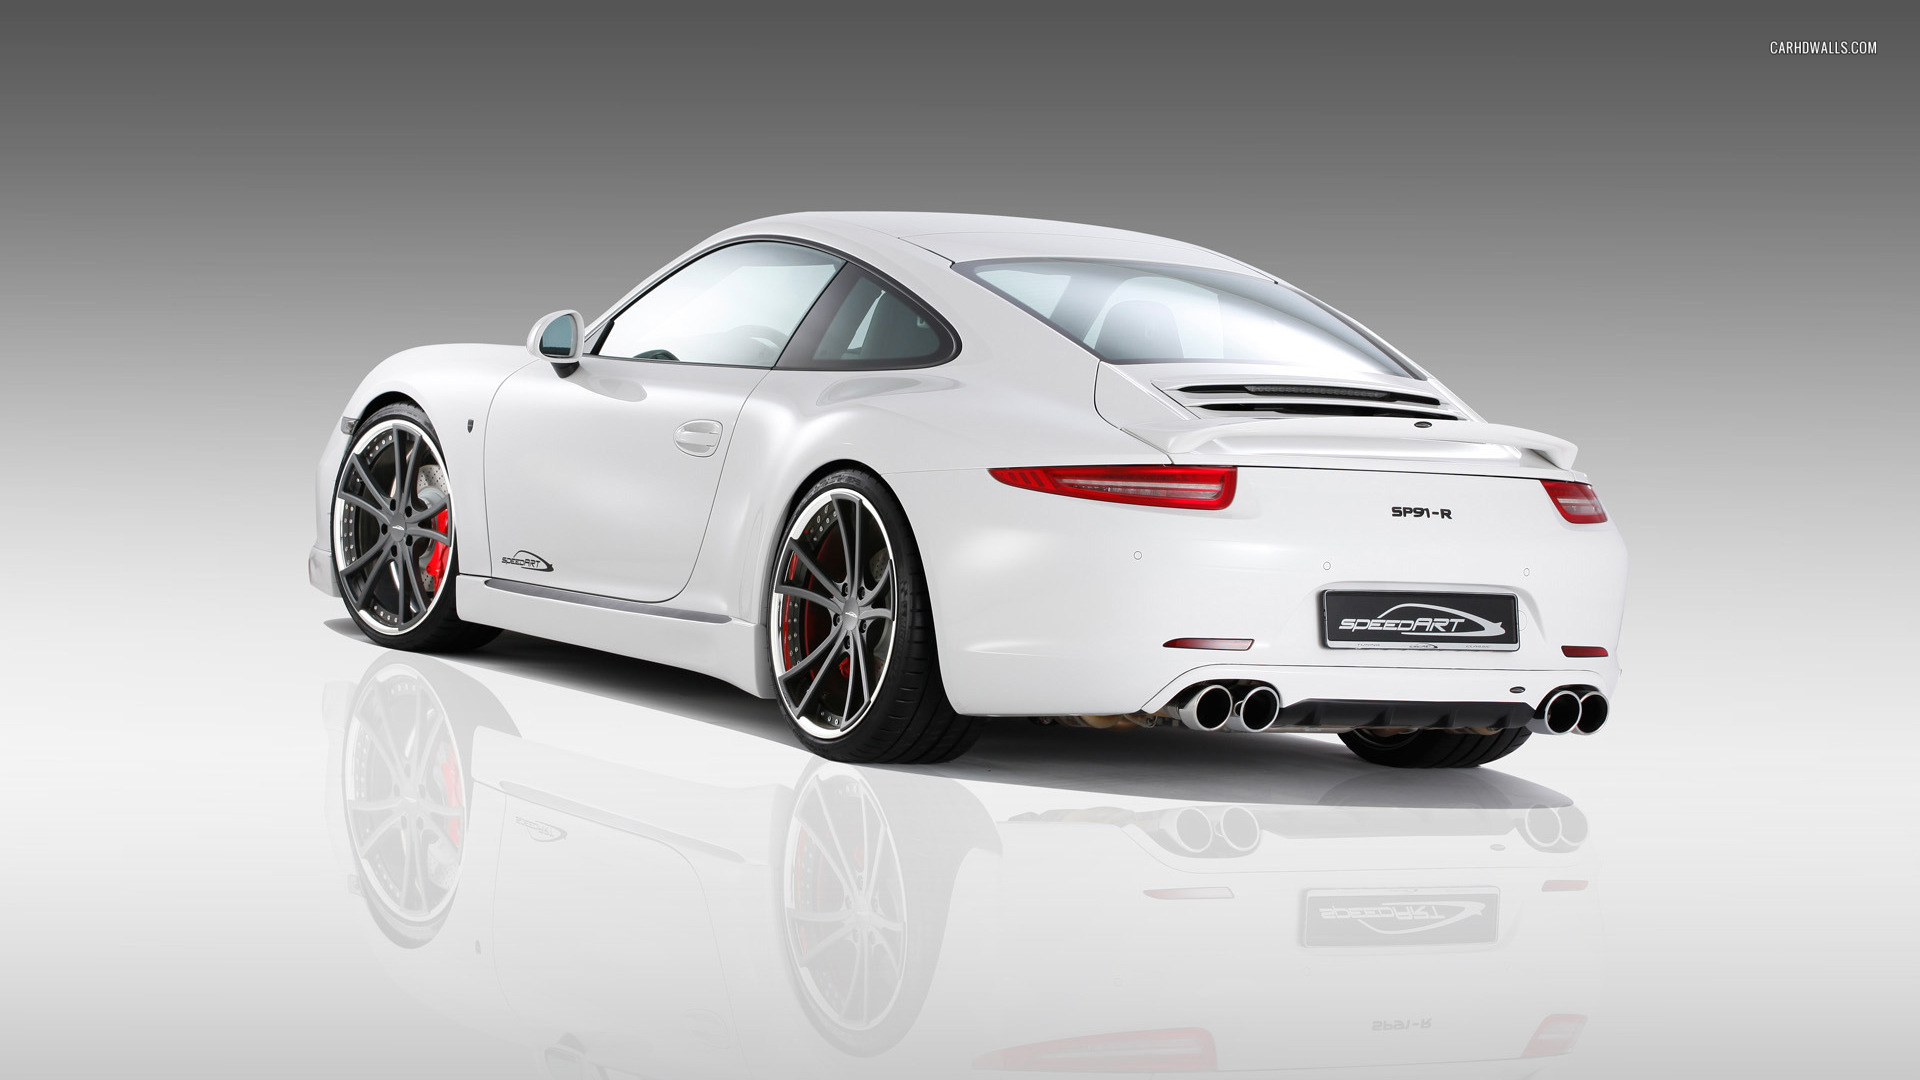 Porsche 911 Turbo Wallpaper 1920x1080   image 222 1920x1080